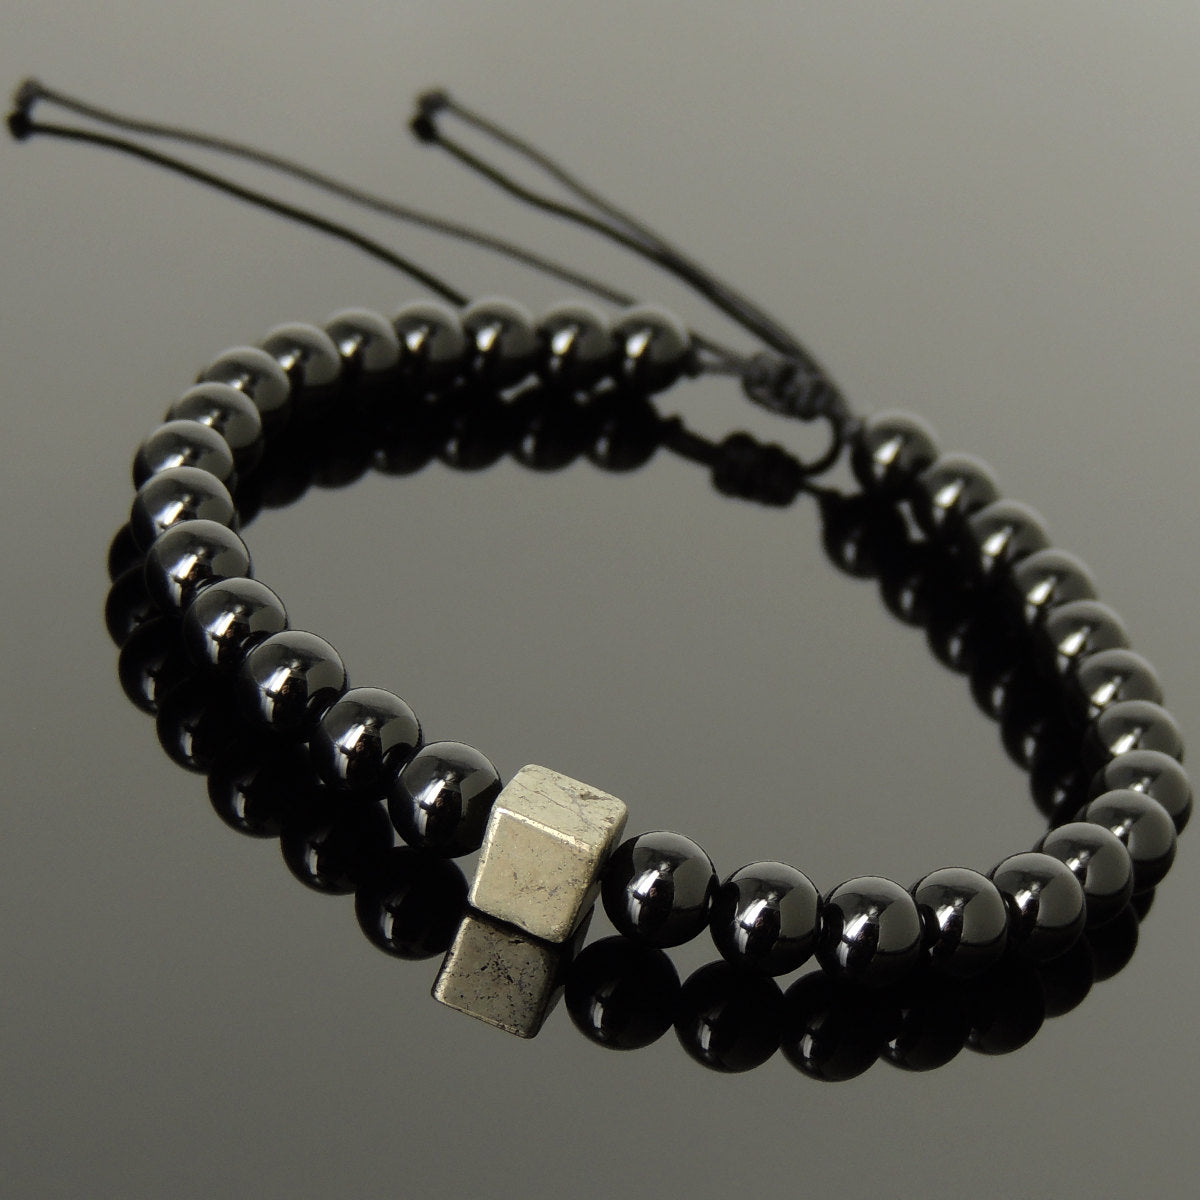 6mm Bright Black Onyx Gemstone Adjustable Braided Bracelet with Gold Pyrite Cube Bead - Handmade by Gem & Silver BR1079